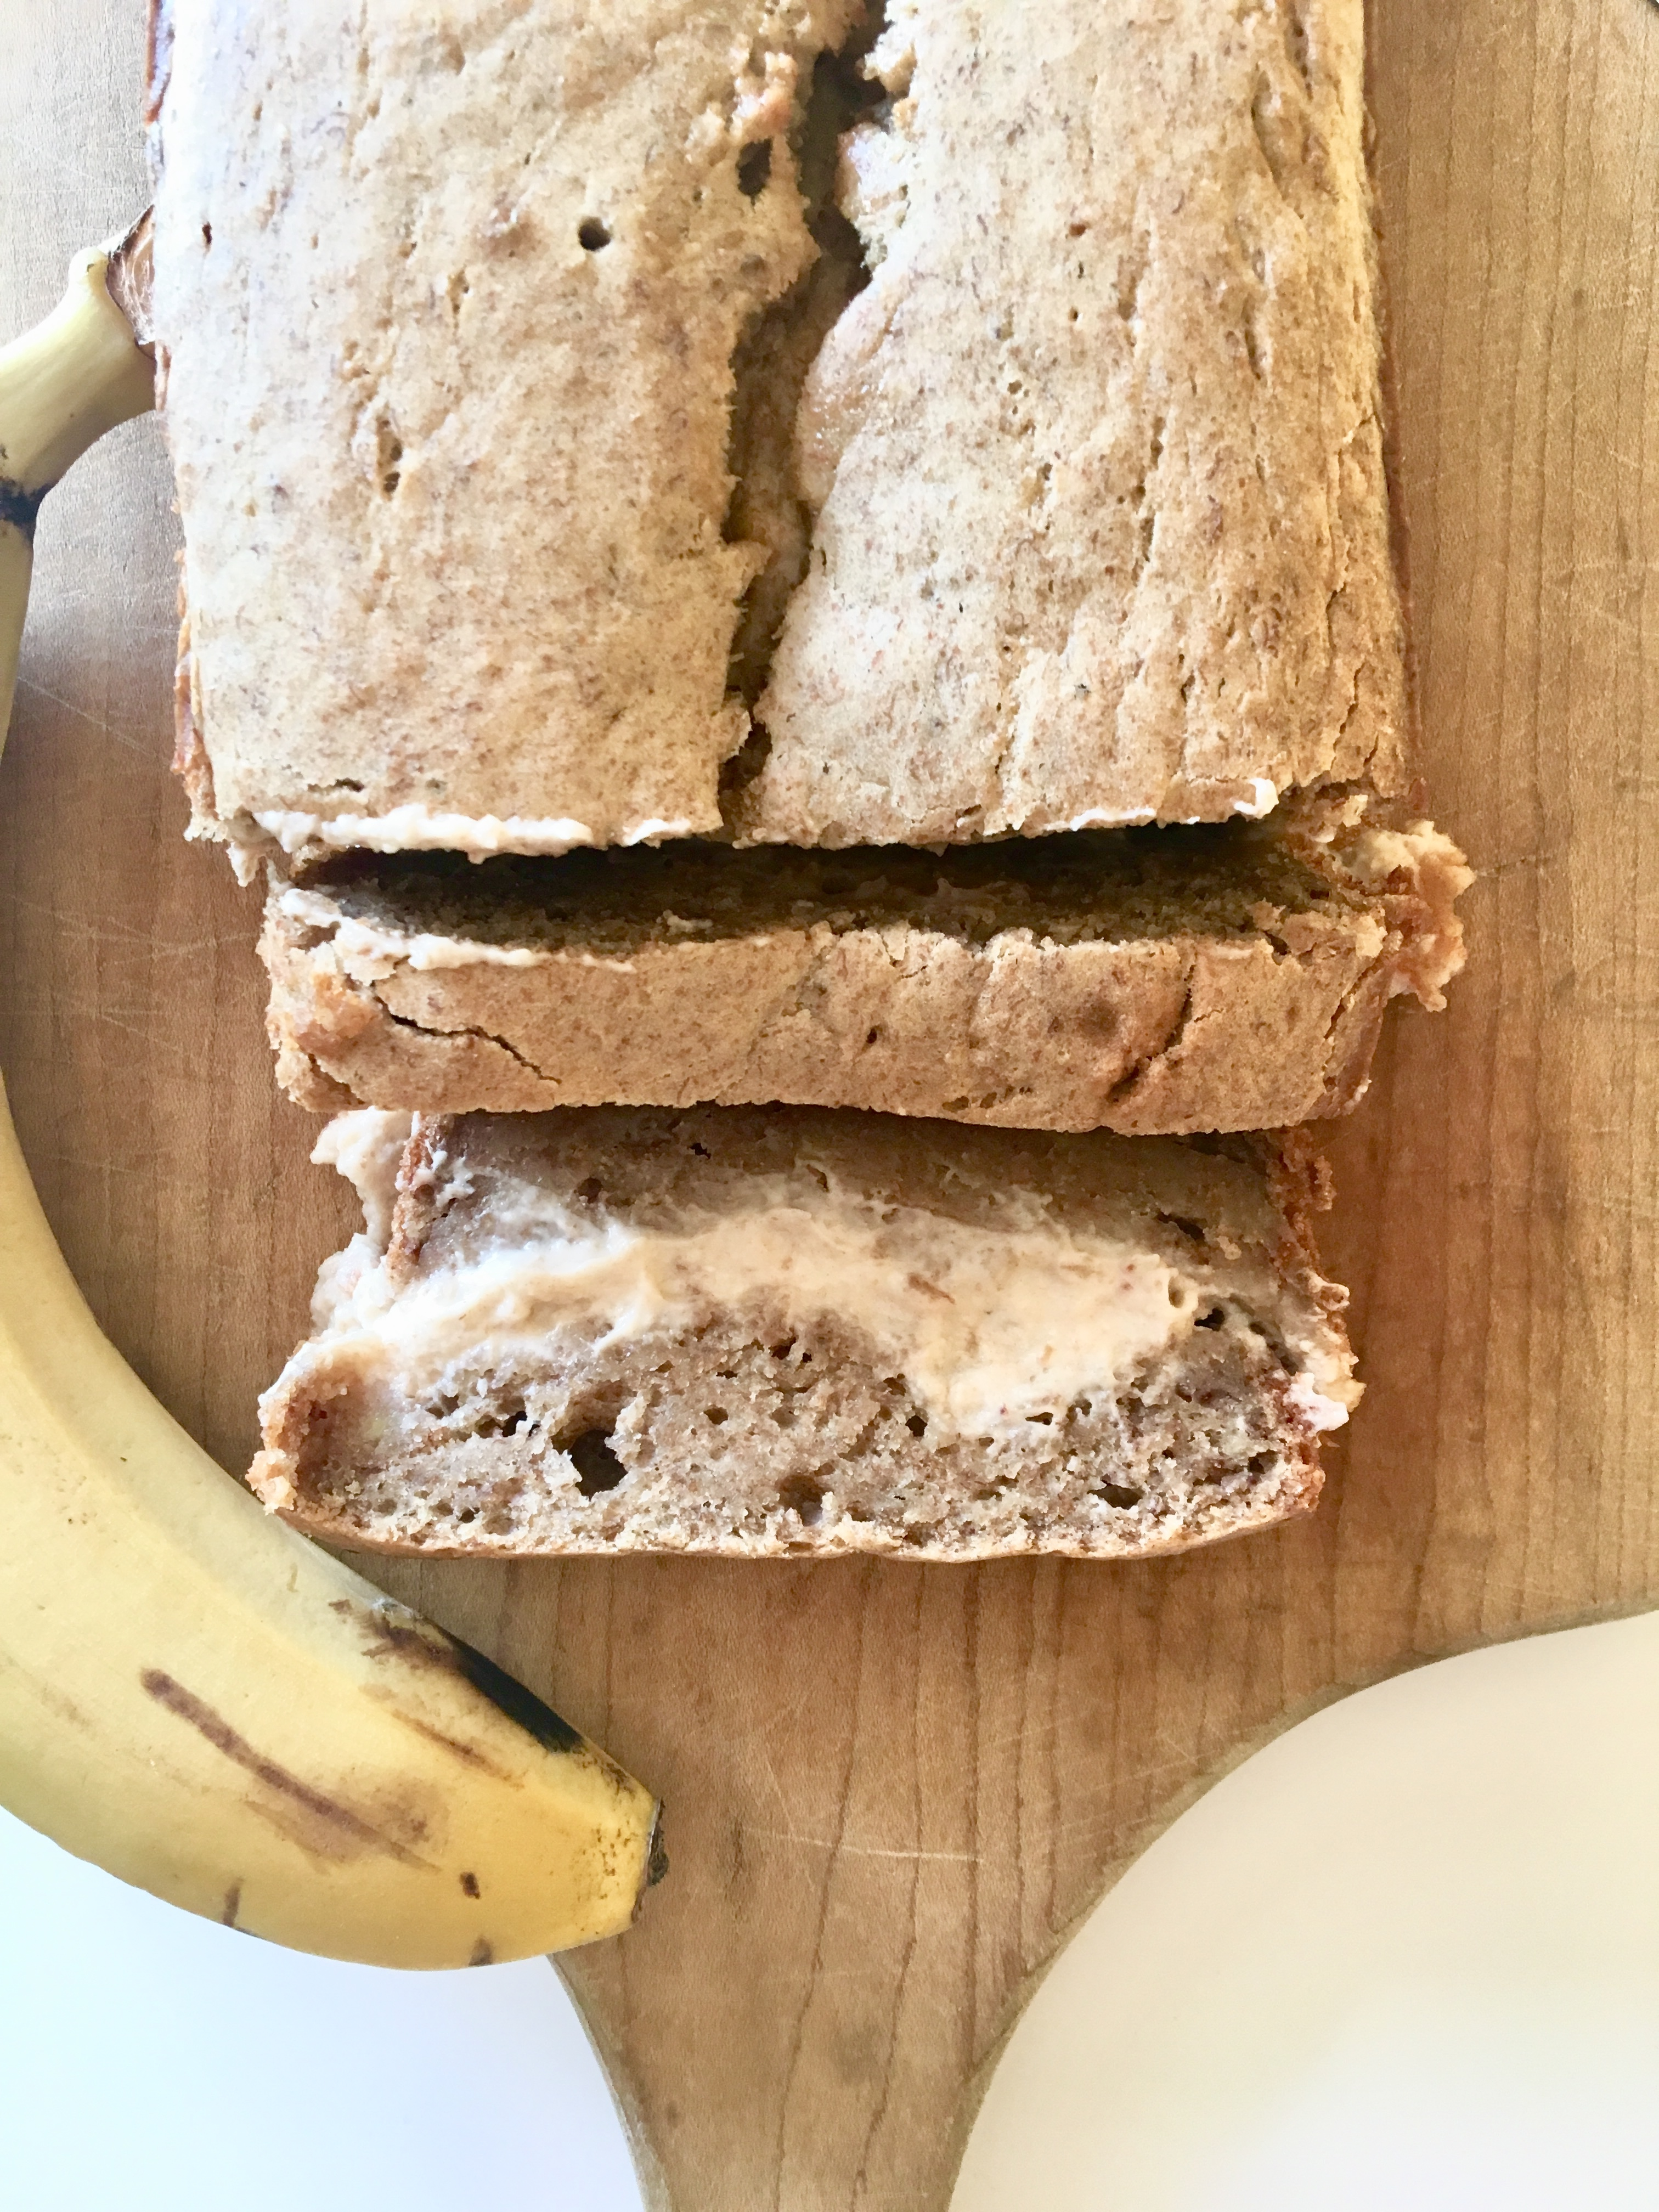 Vegan Cream Cheese Stuffed Banana Bread